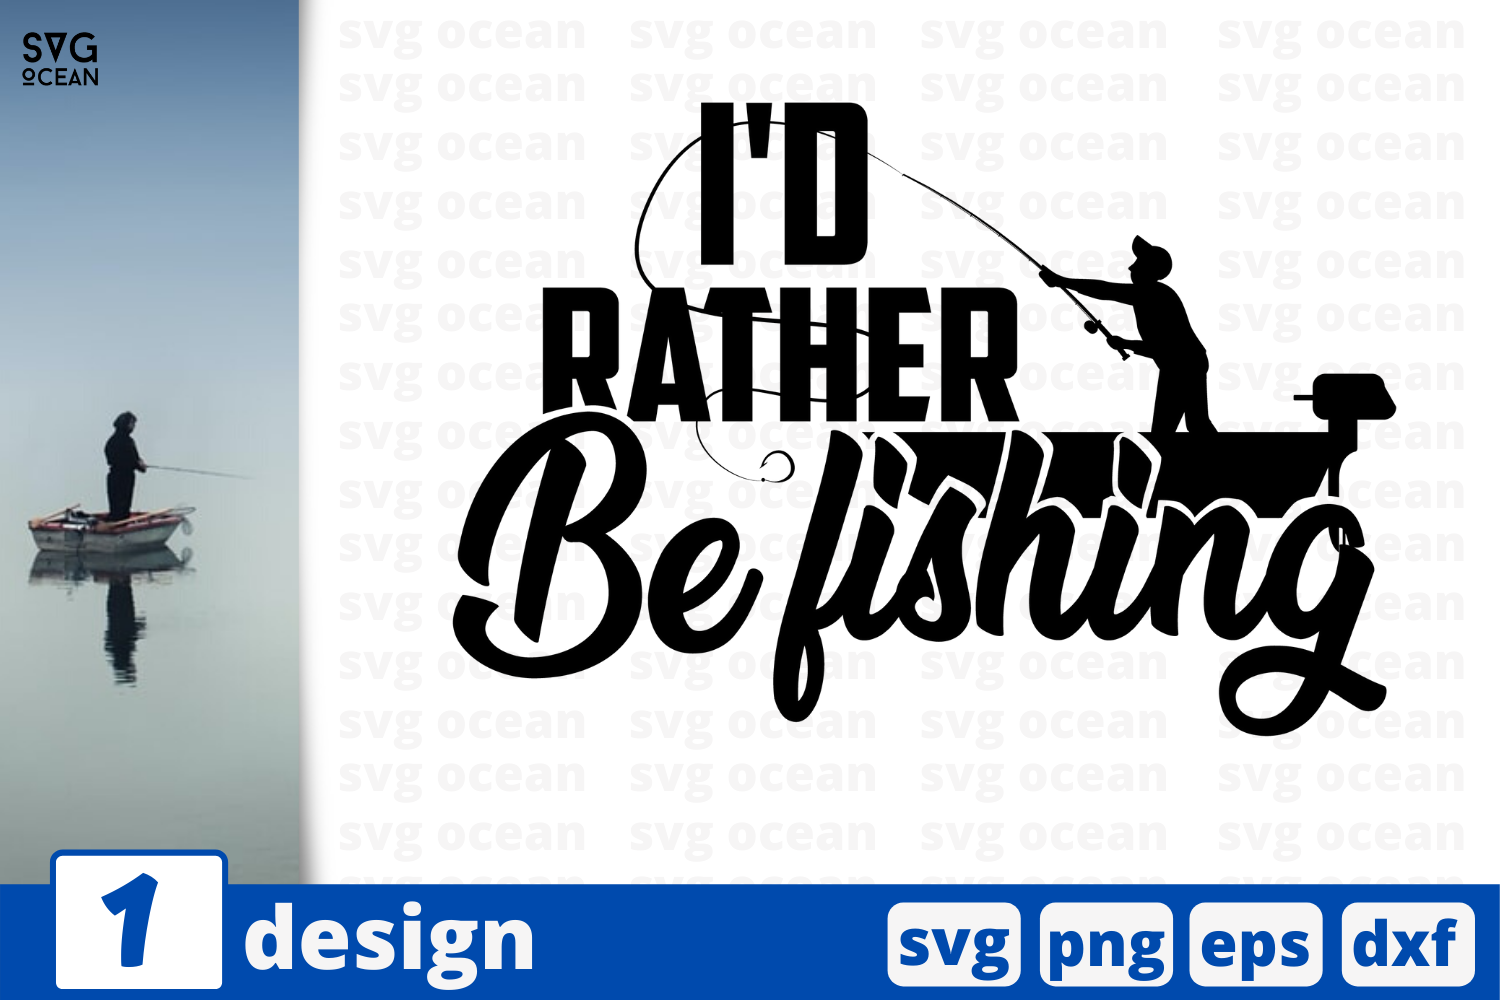 Download 1 I D Rather Be Fishing Svg Bundle Quotes Cricut Svg By Svgocean Thehungryjpeg Com